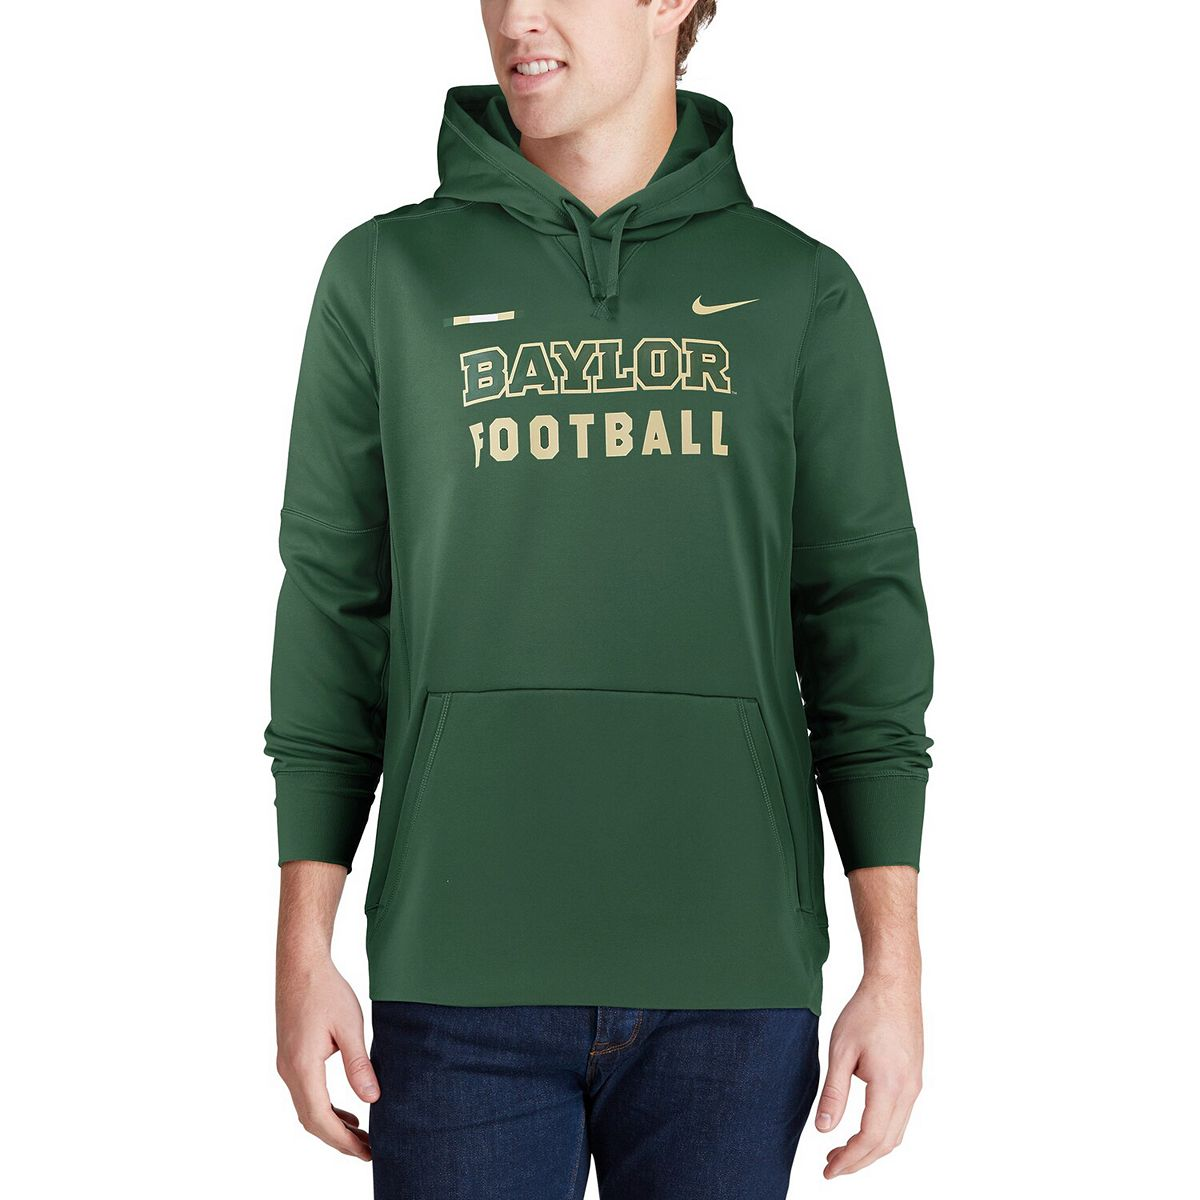 Men's Nike Green Baylor Bears 2017 Sideline Football DNA Circuit Therma Performance Pullover Hoodie ZHTXT